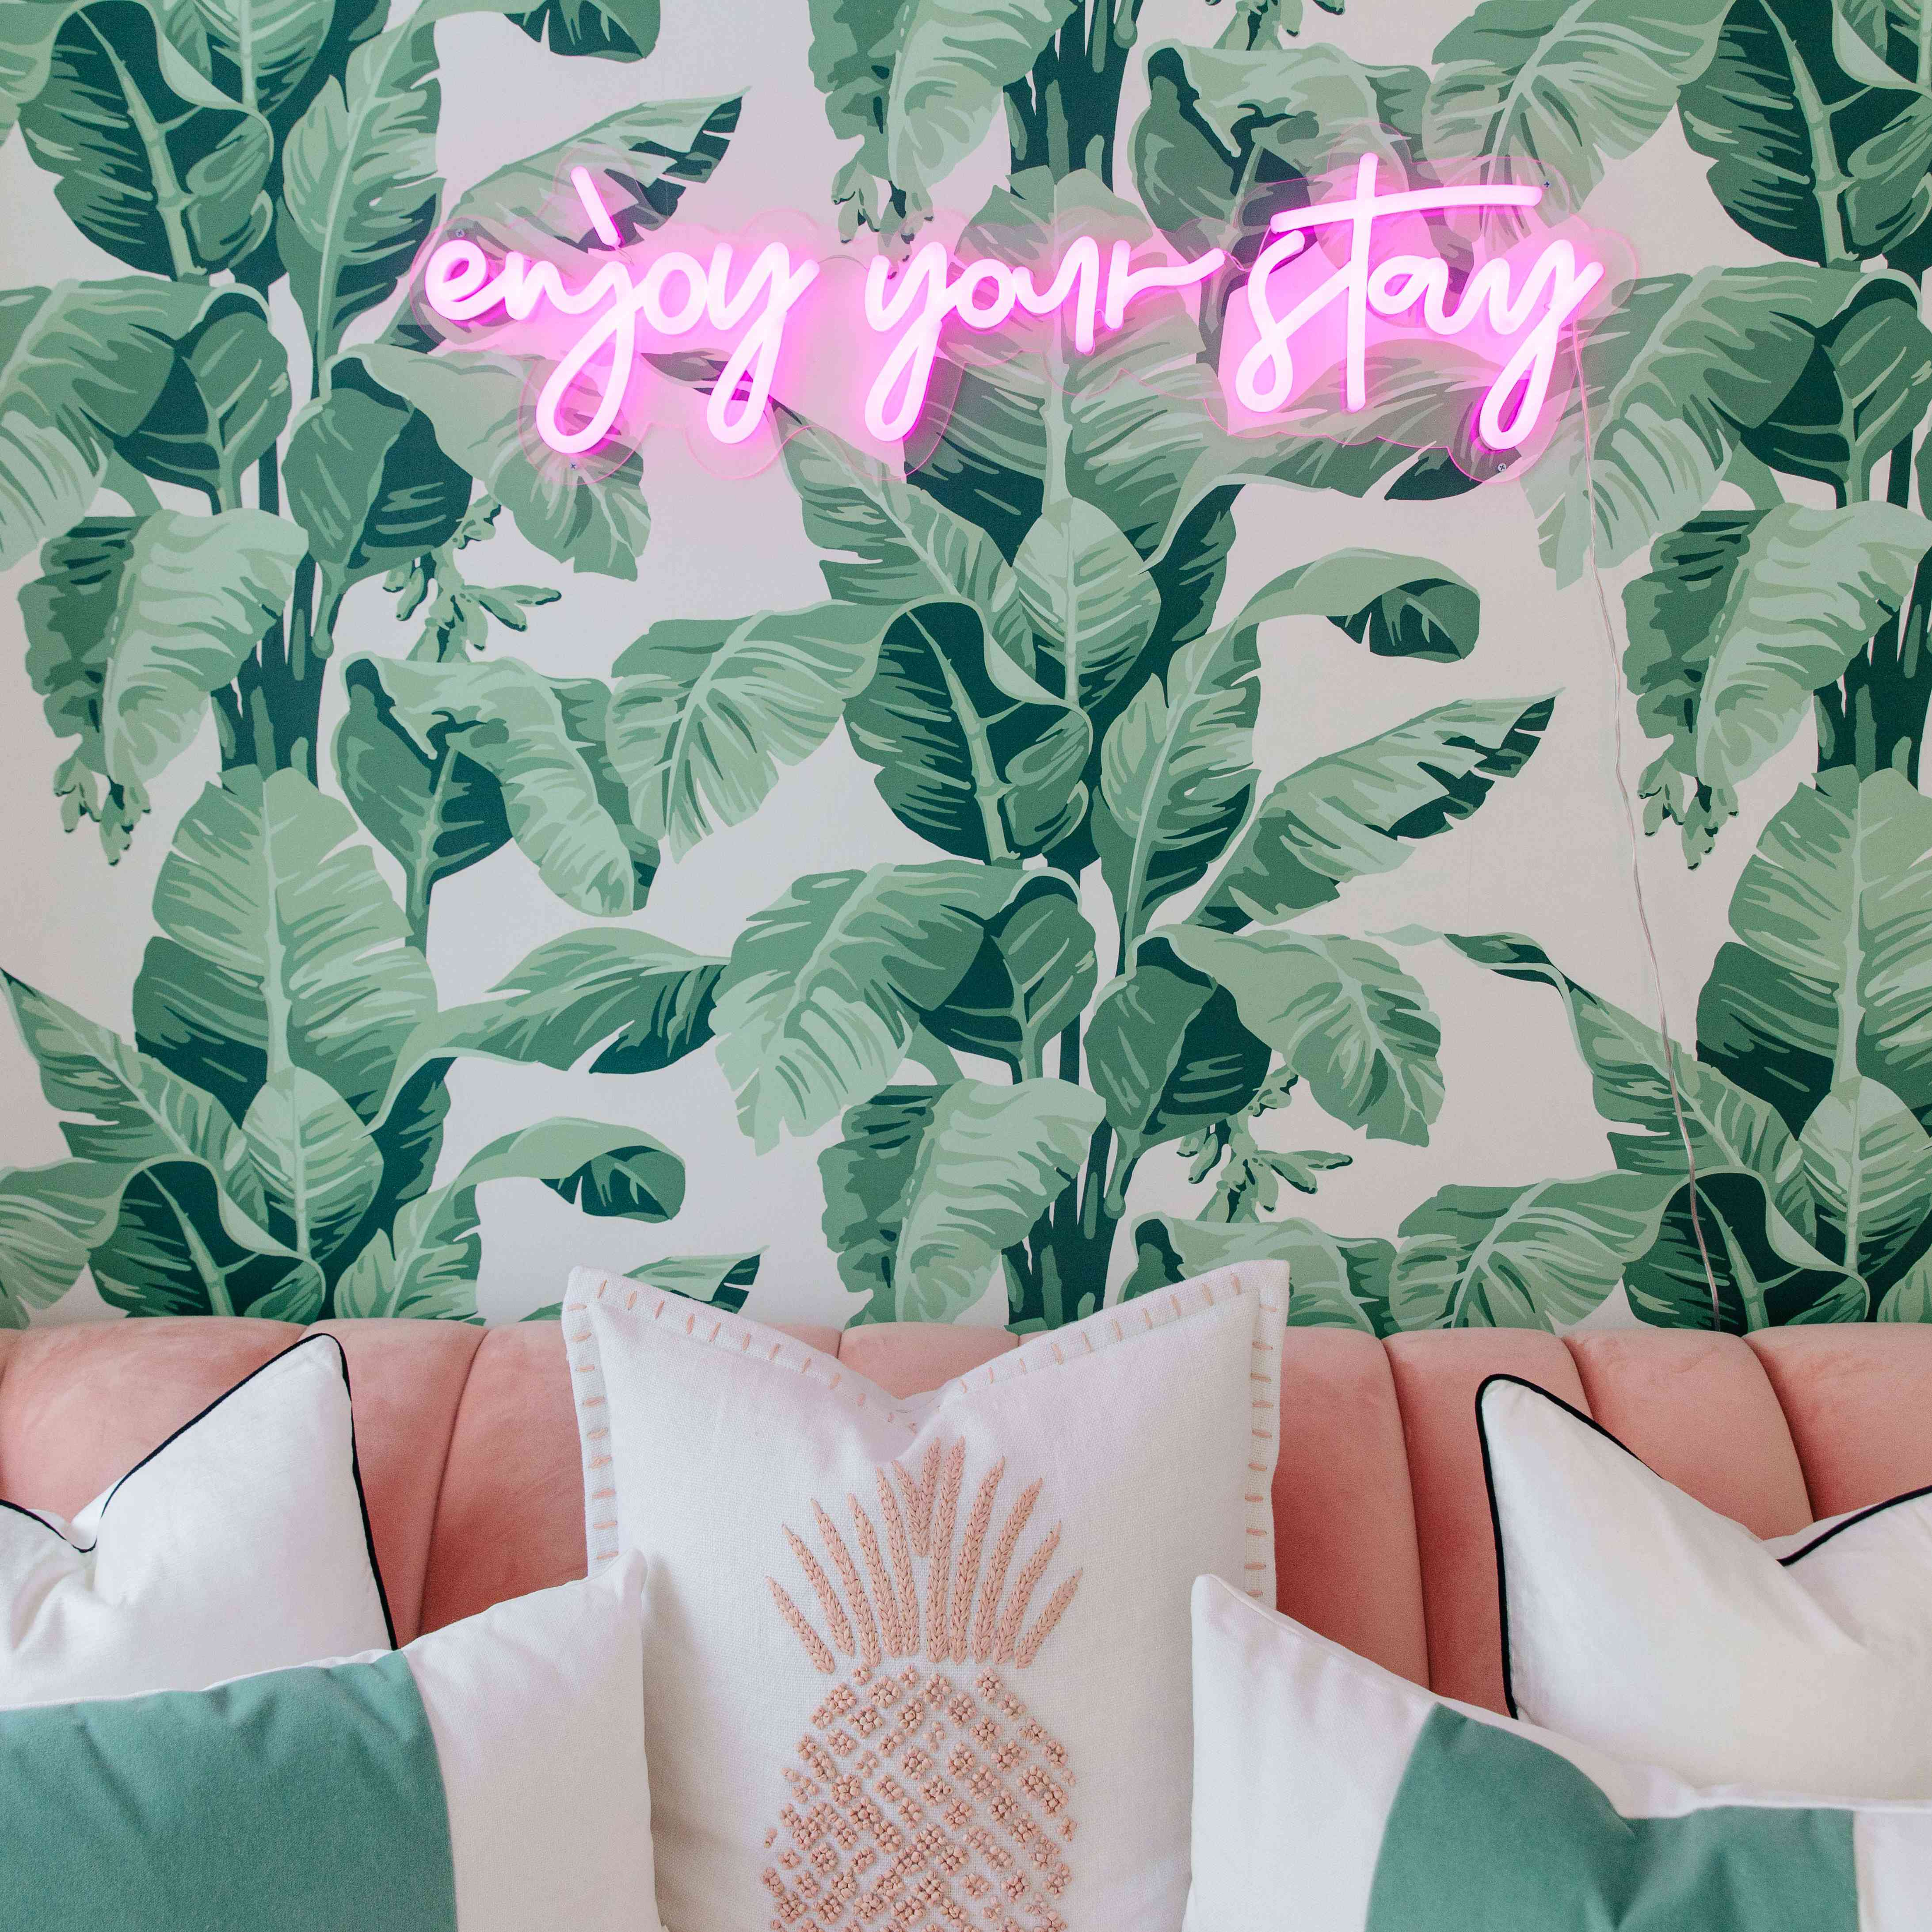 Enjoy your stay neon sign on wall.